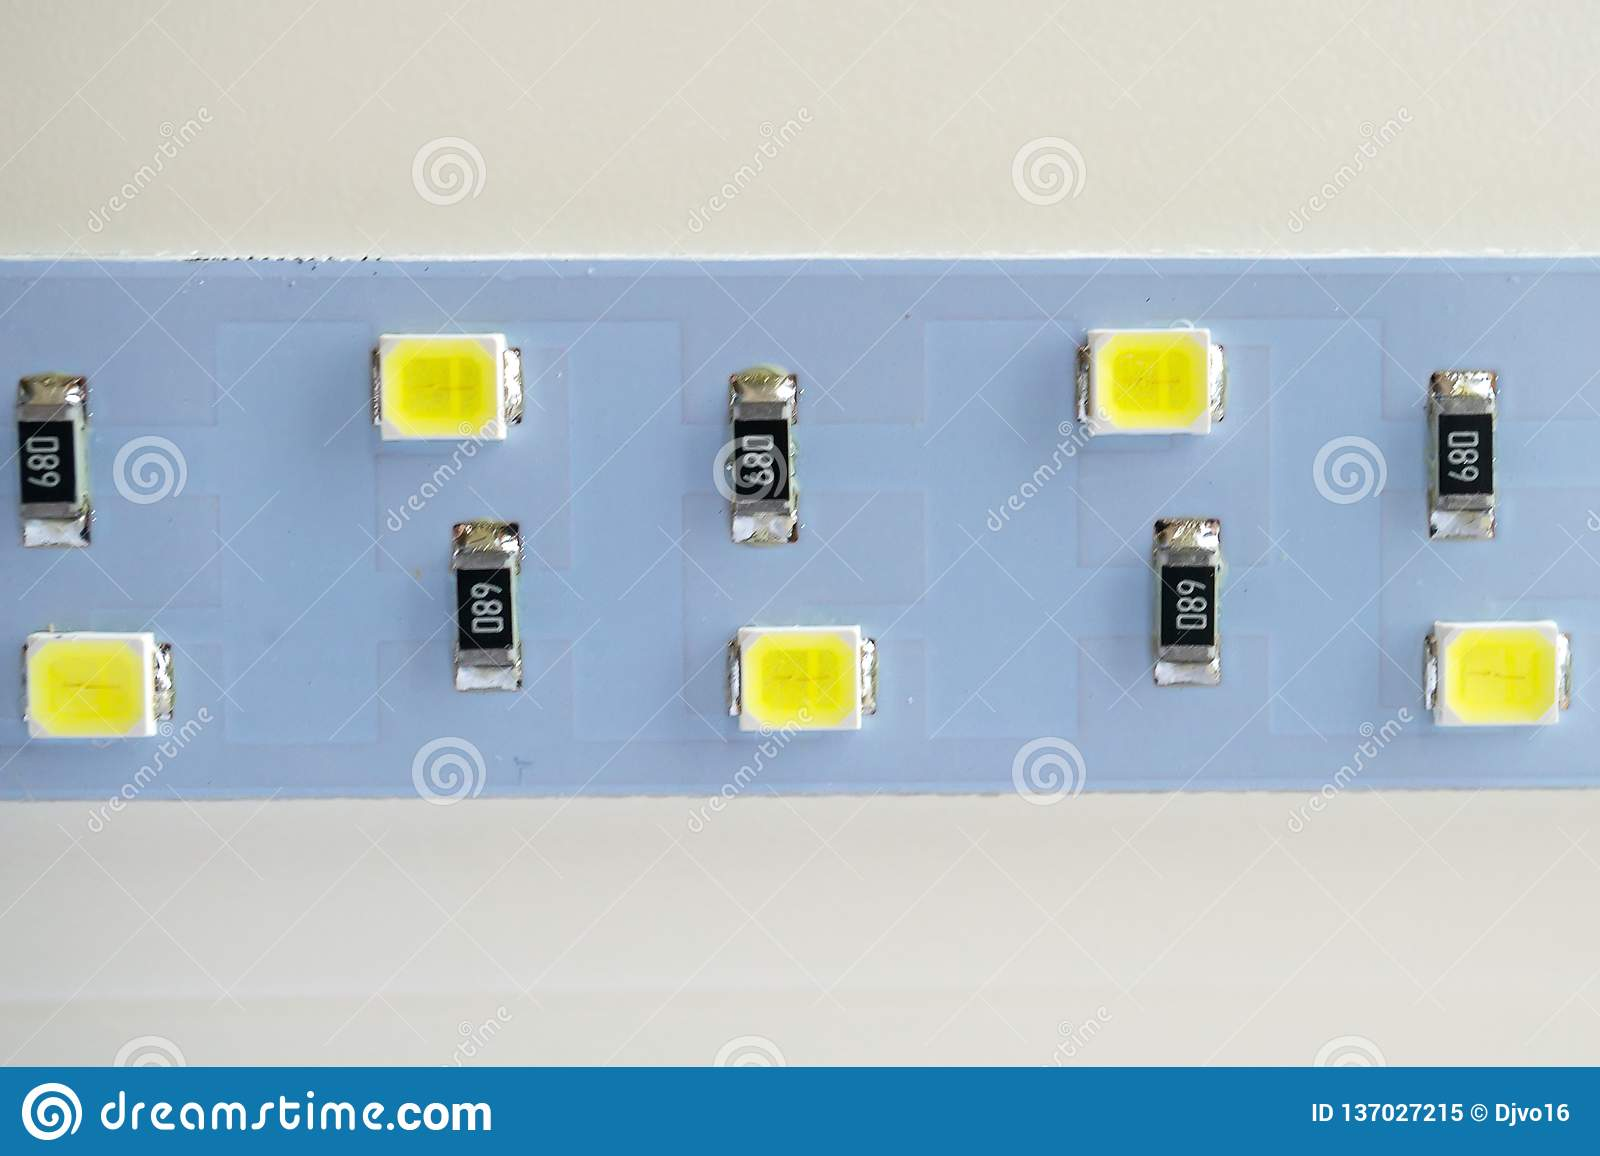 LED light strip close-up. electronic components and equipment